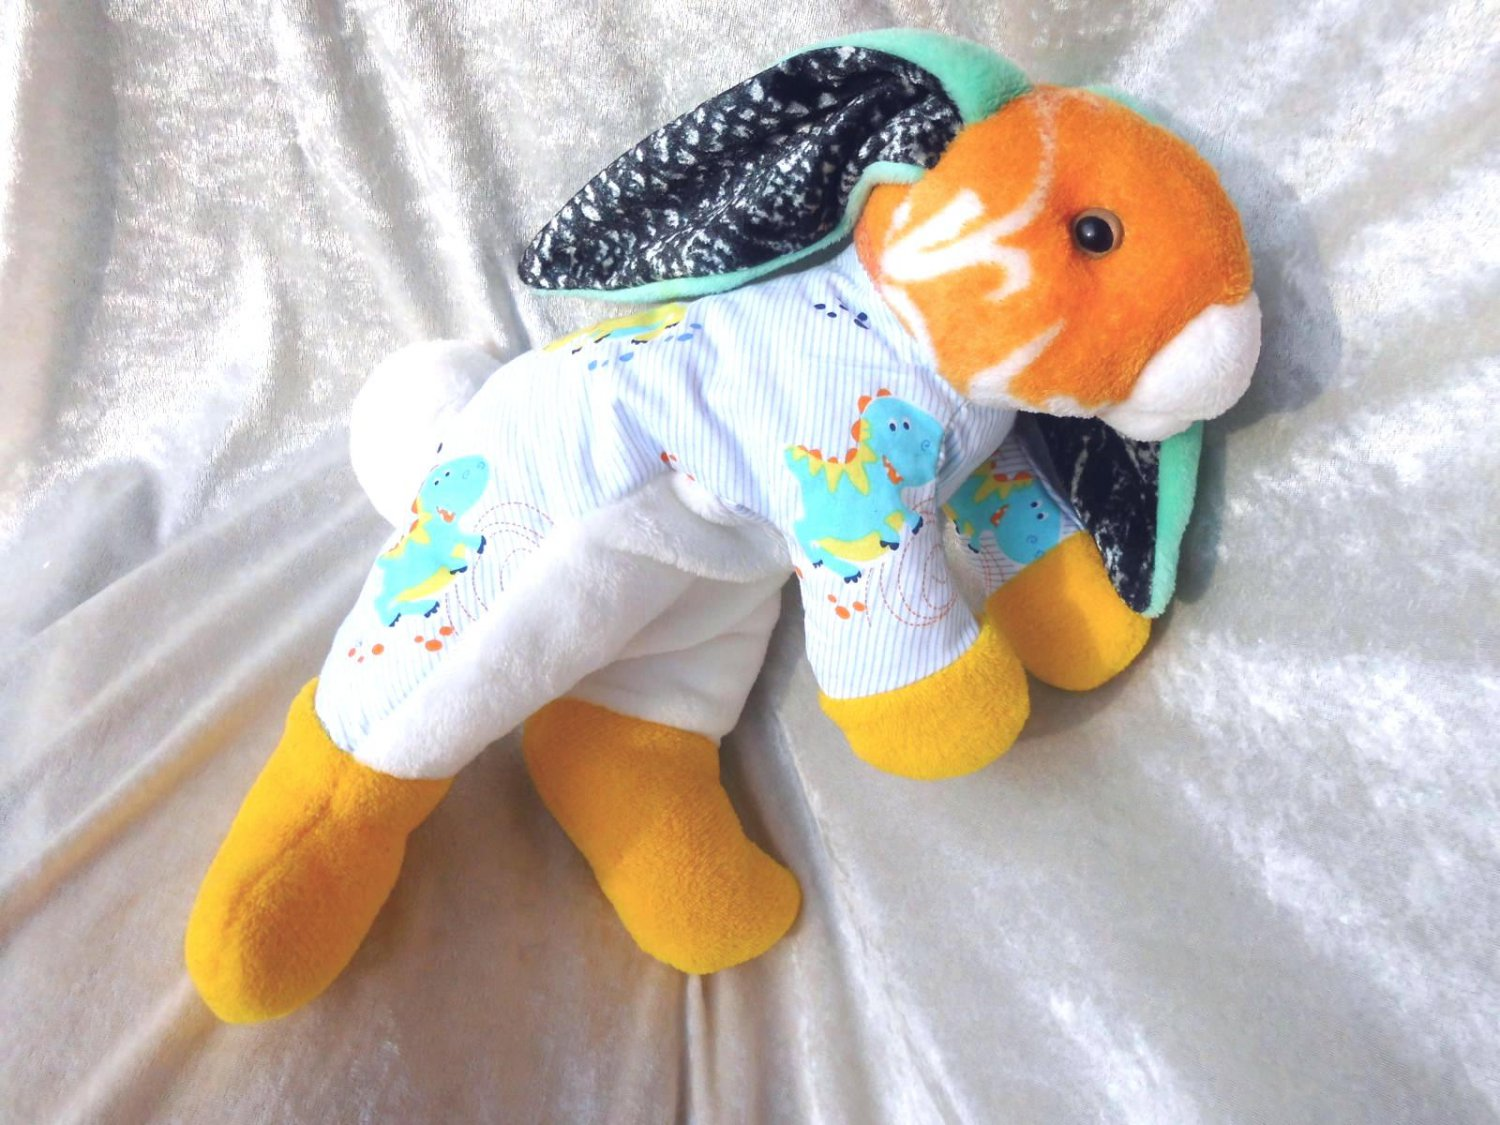 DINOSAUR BUNNY LOP soft toy floppy rabbit yellow white with Dinos for boys nursery decor handmade